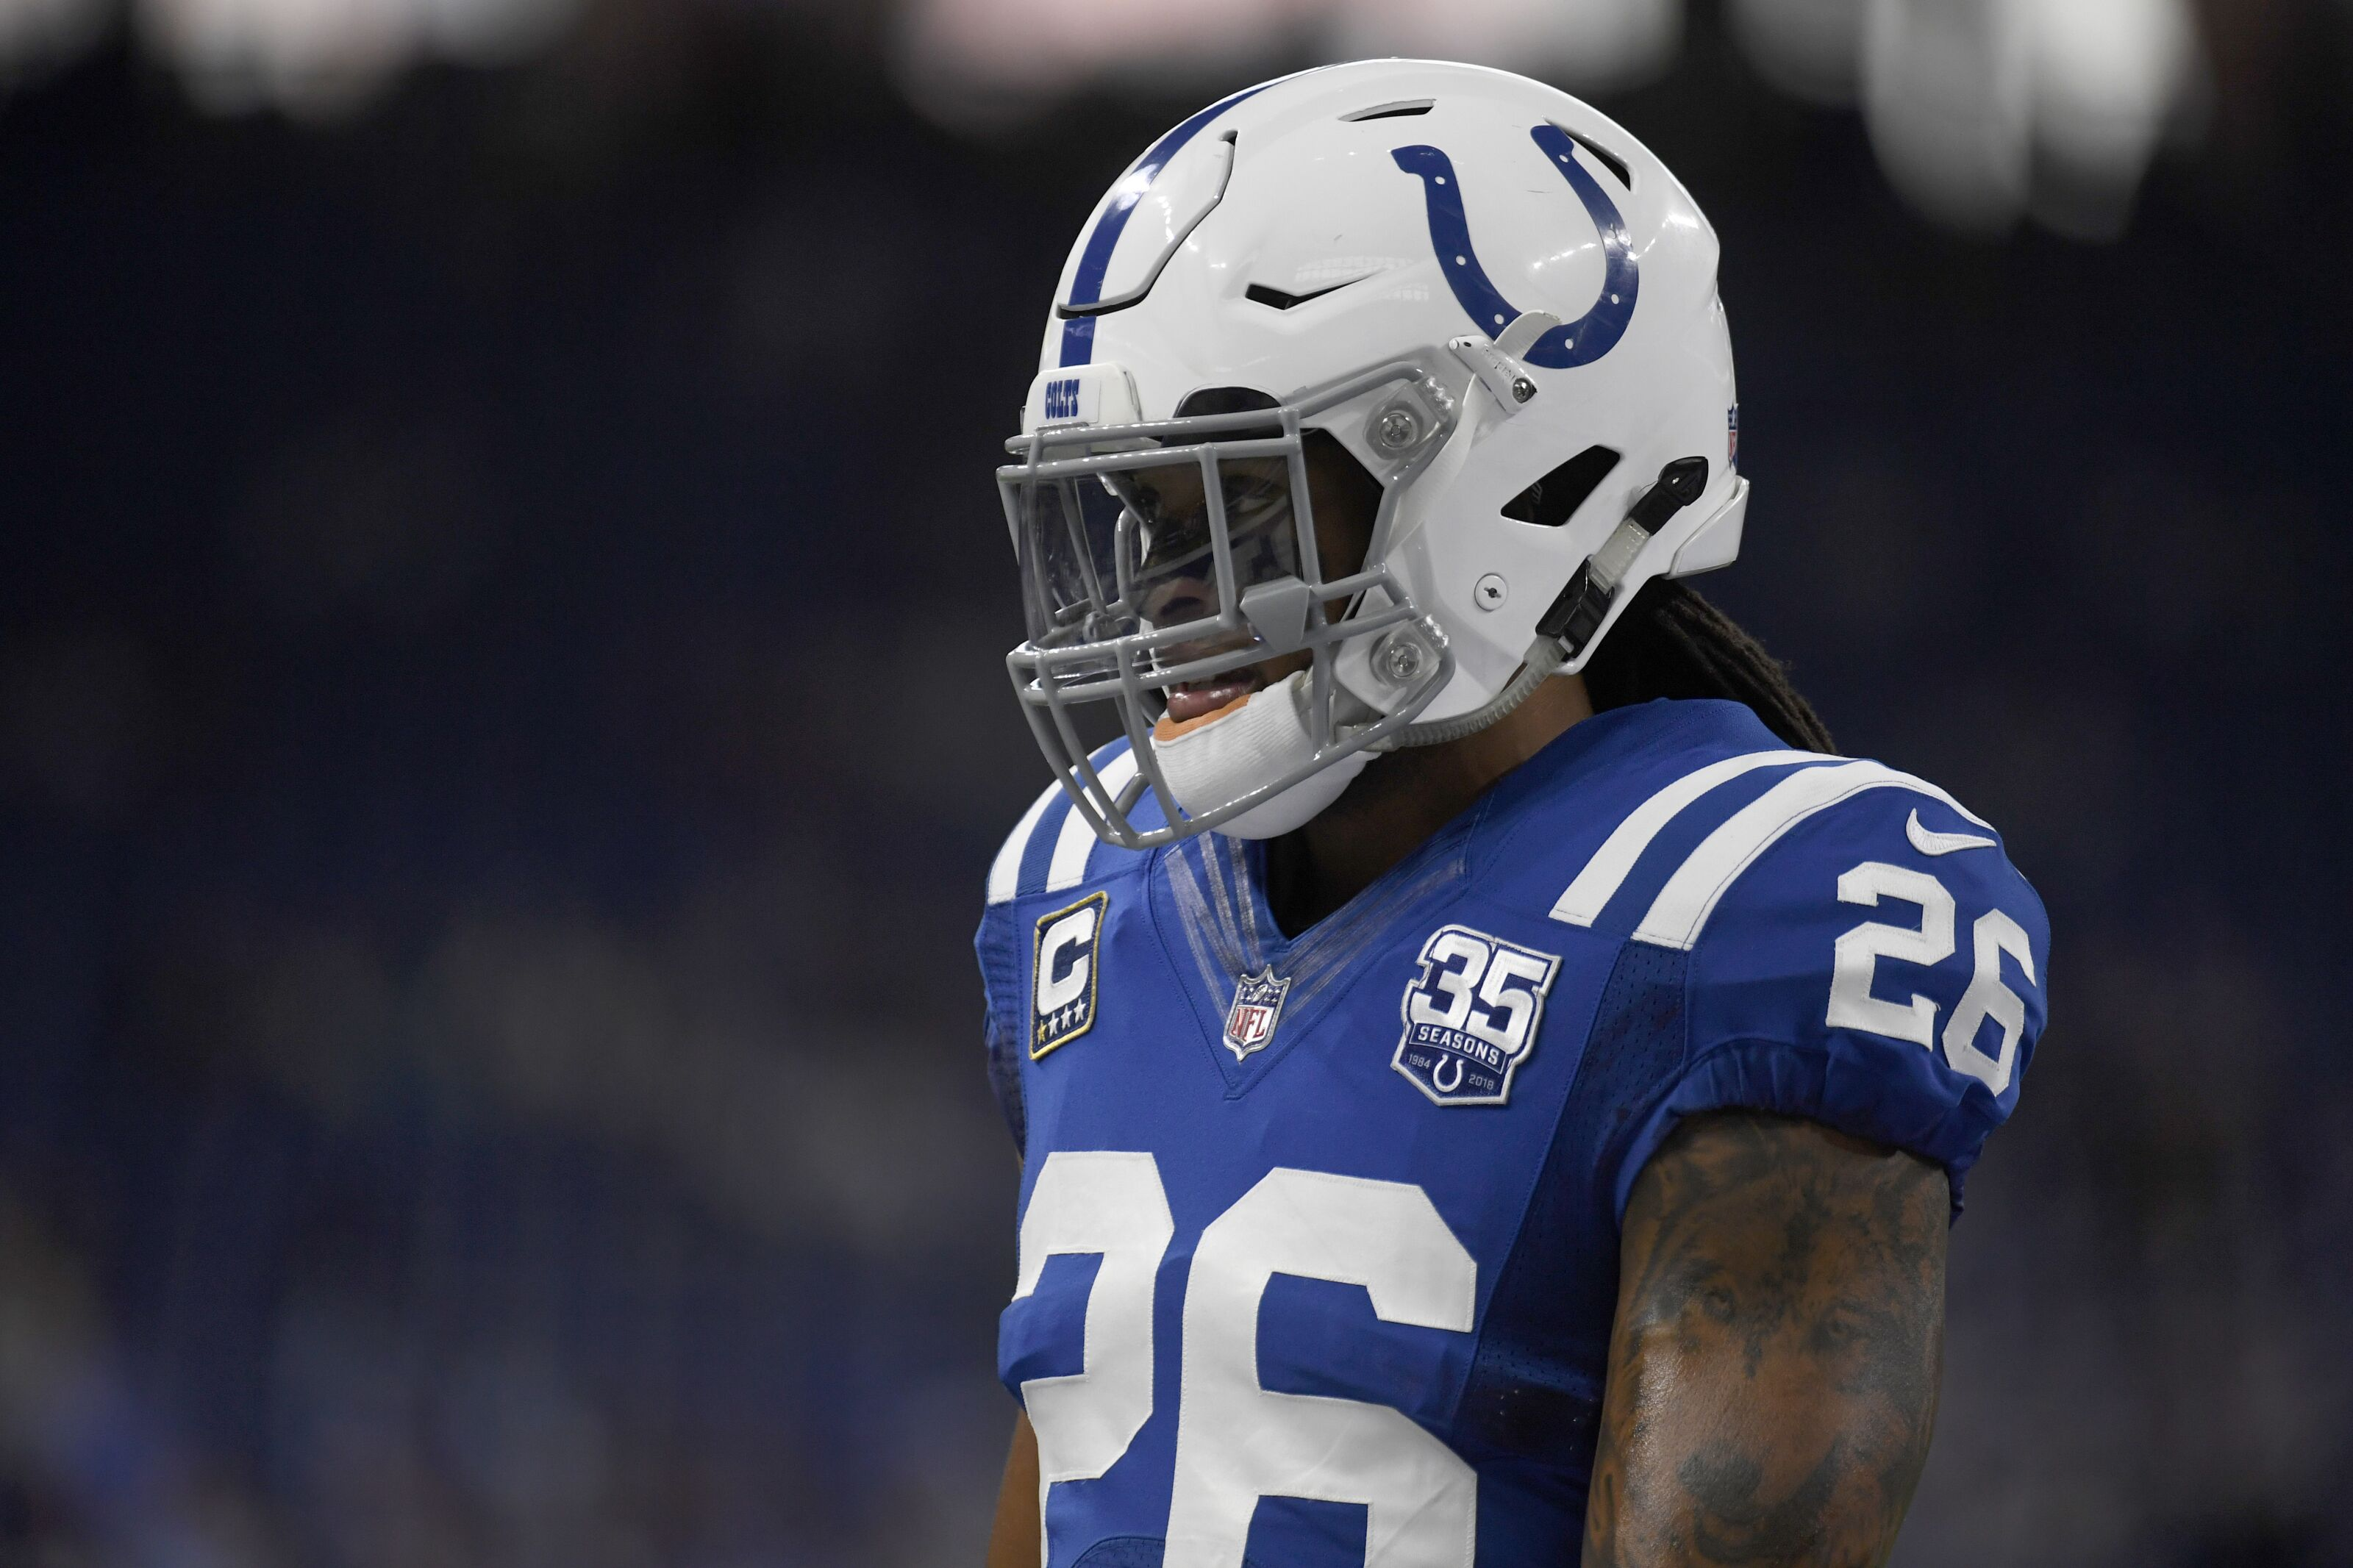 Colts defense to be at full strength against Texans